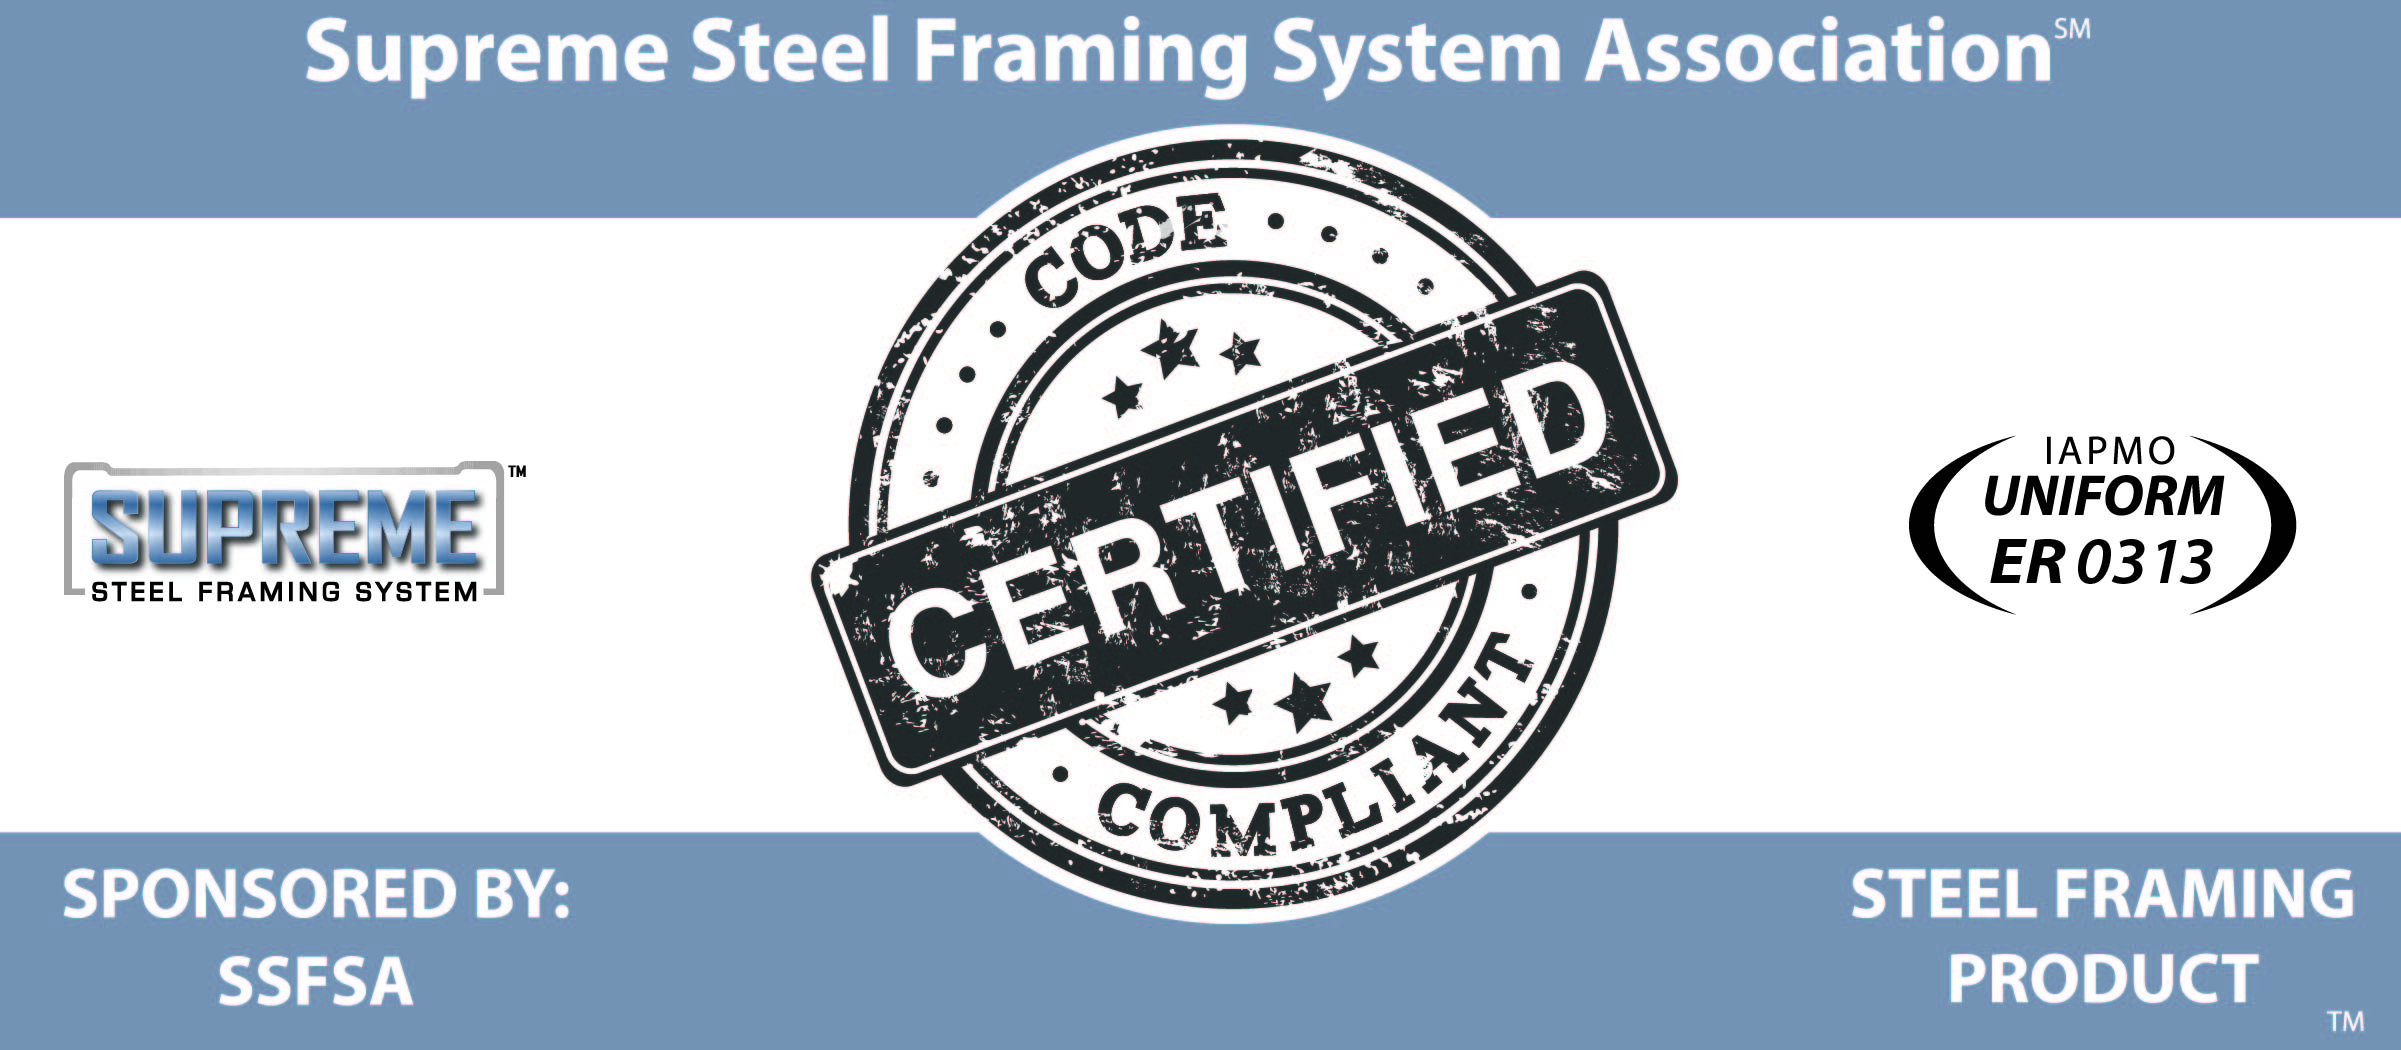 3rd Party Certification Supreme Steel Framing System Association